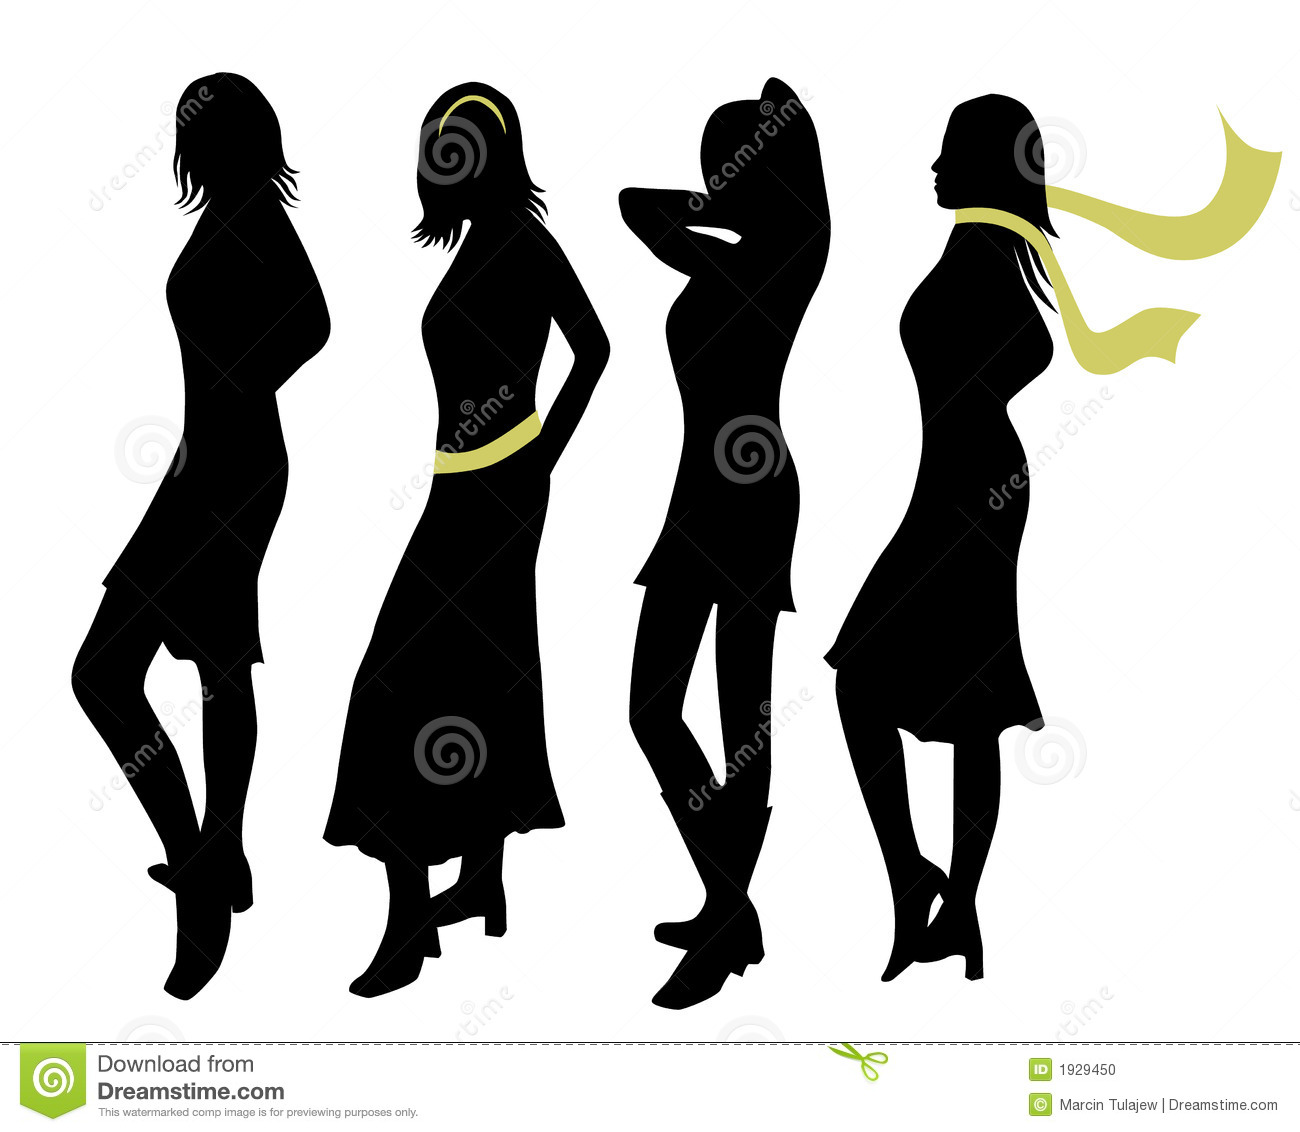 Fashion women silhouettes stock vector. Image of girl ...